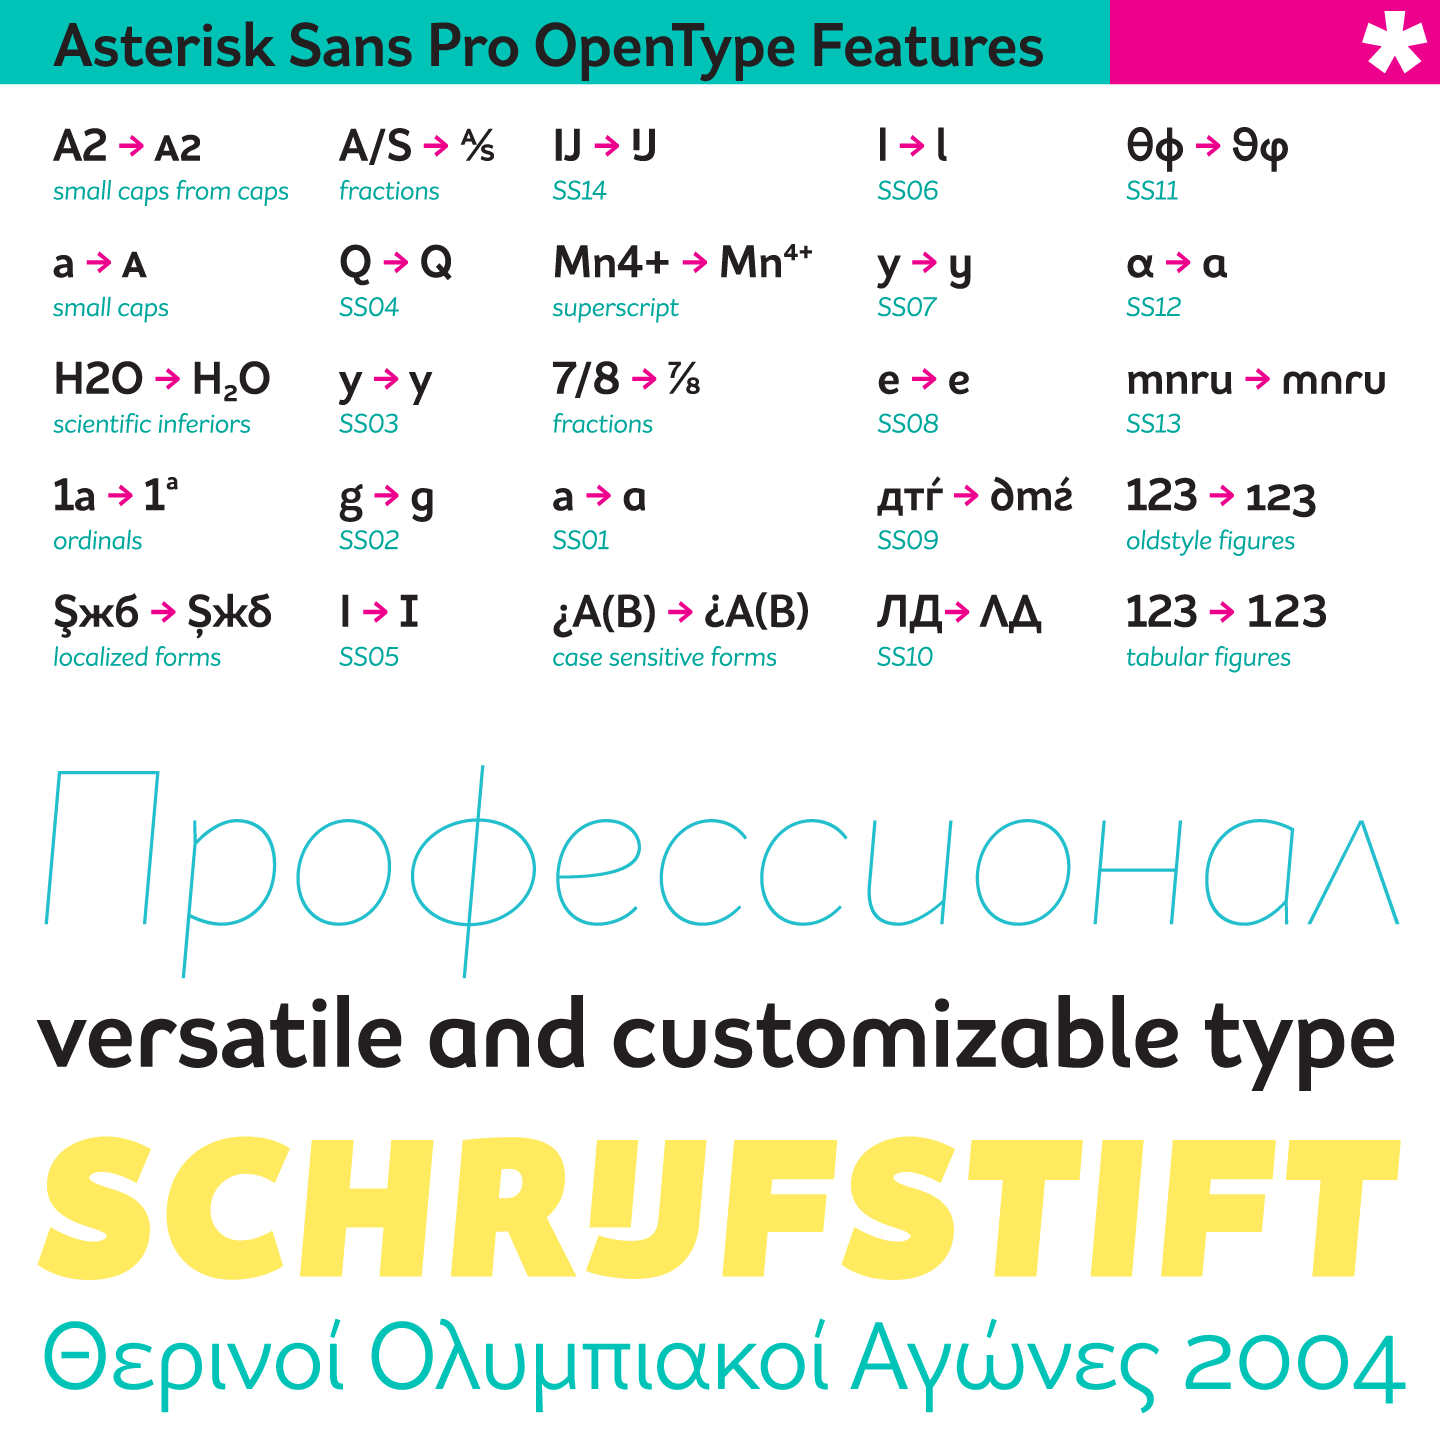 Open Type features and lettering examples in different weights.